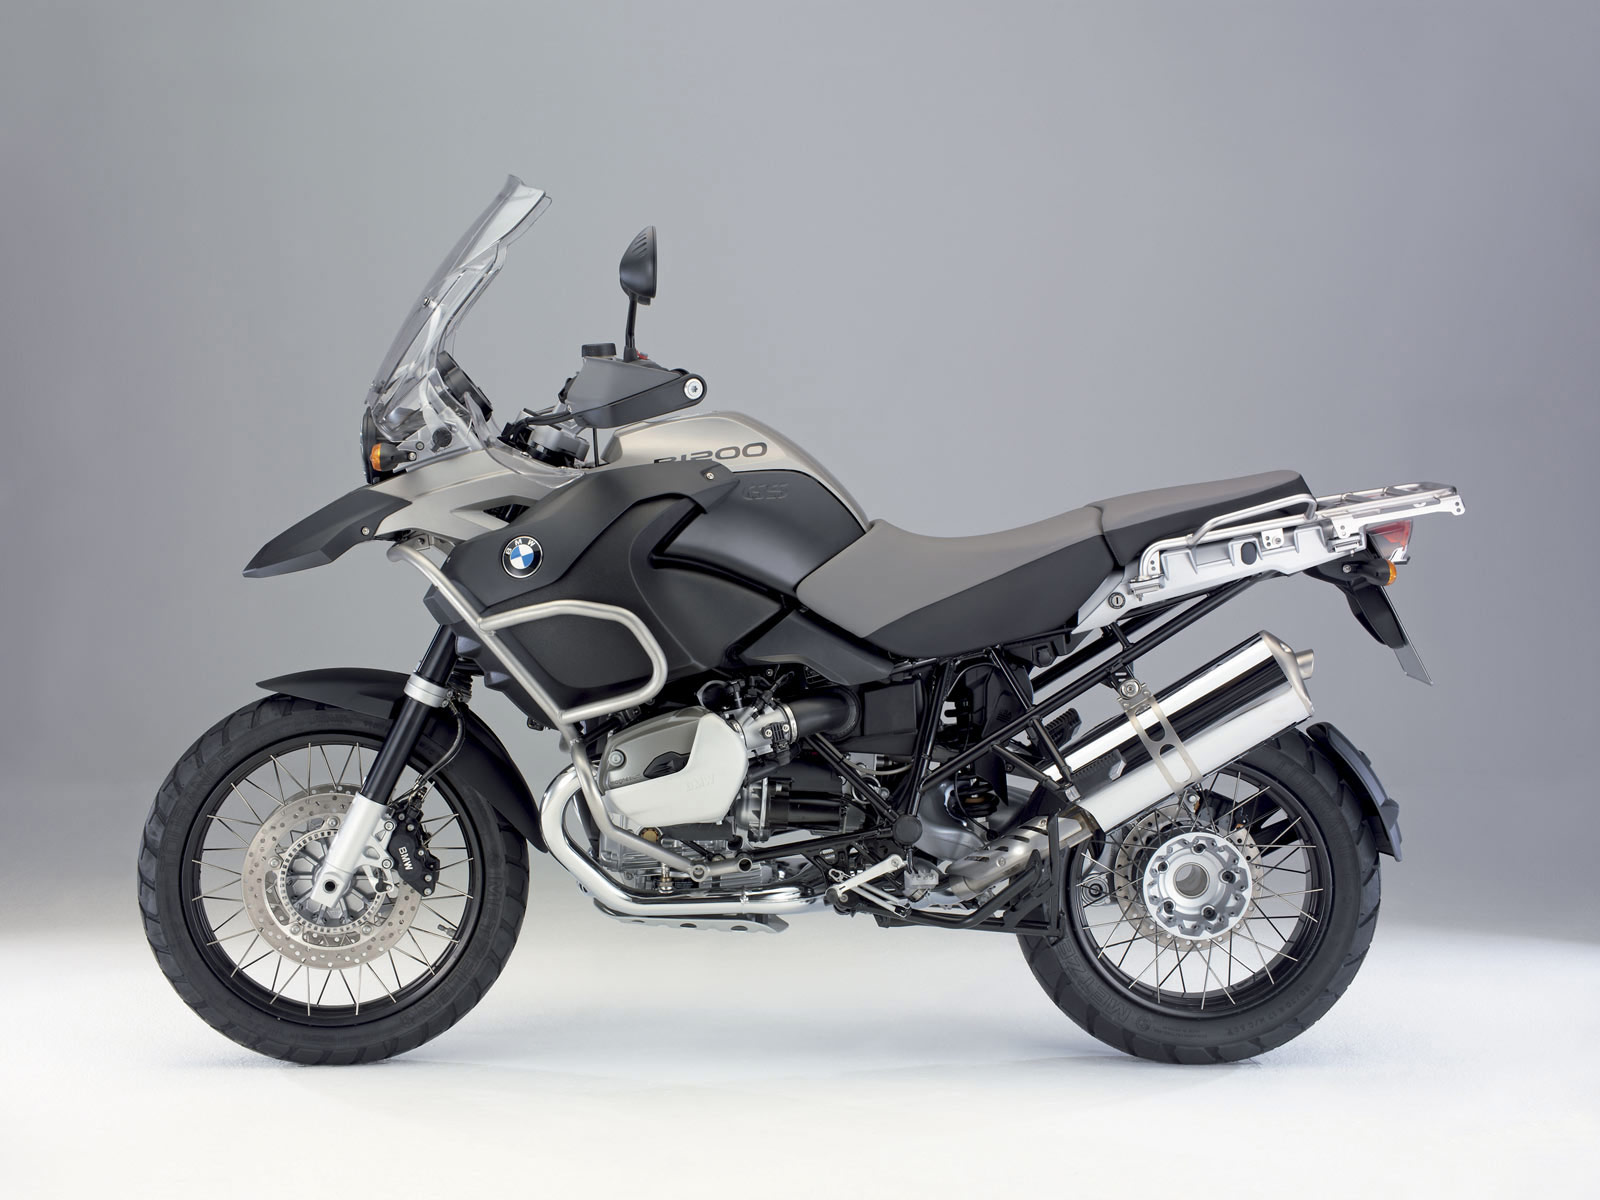 2008 BMW R1200GS Adventures Motorcycle Wallpaper, Specs